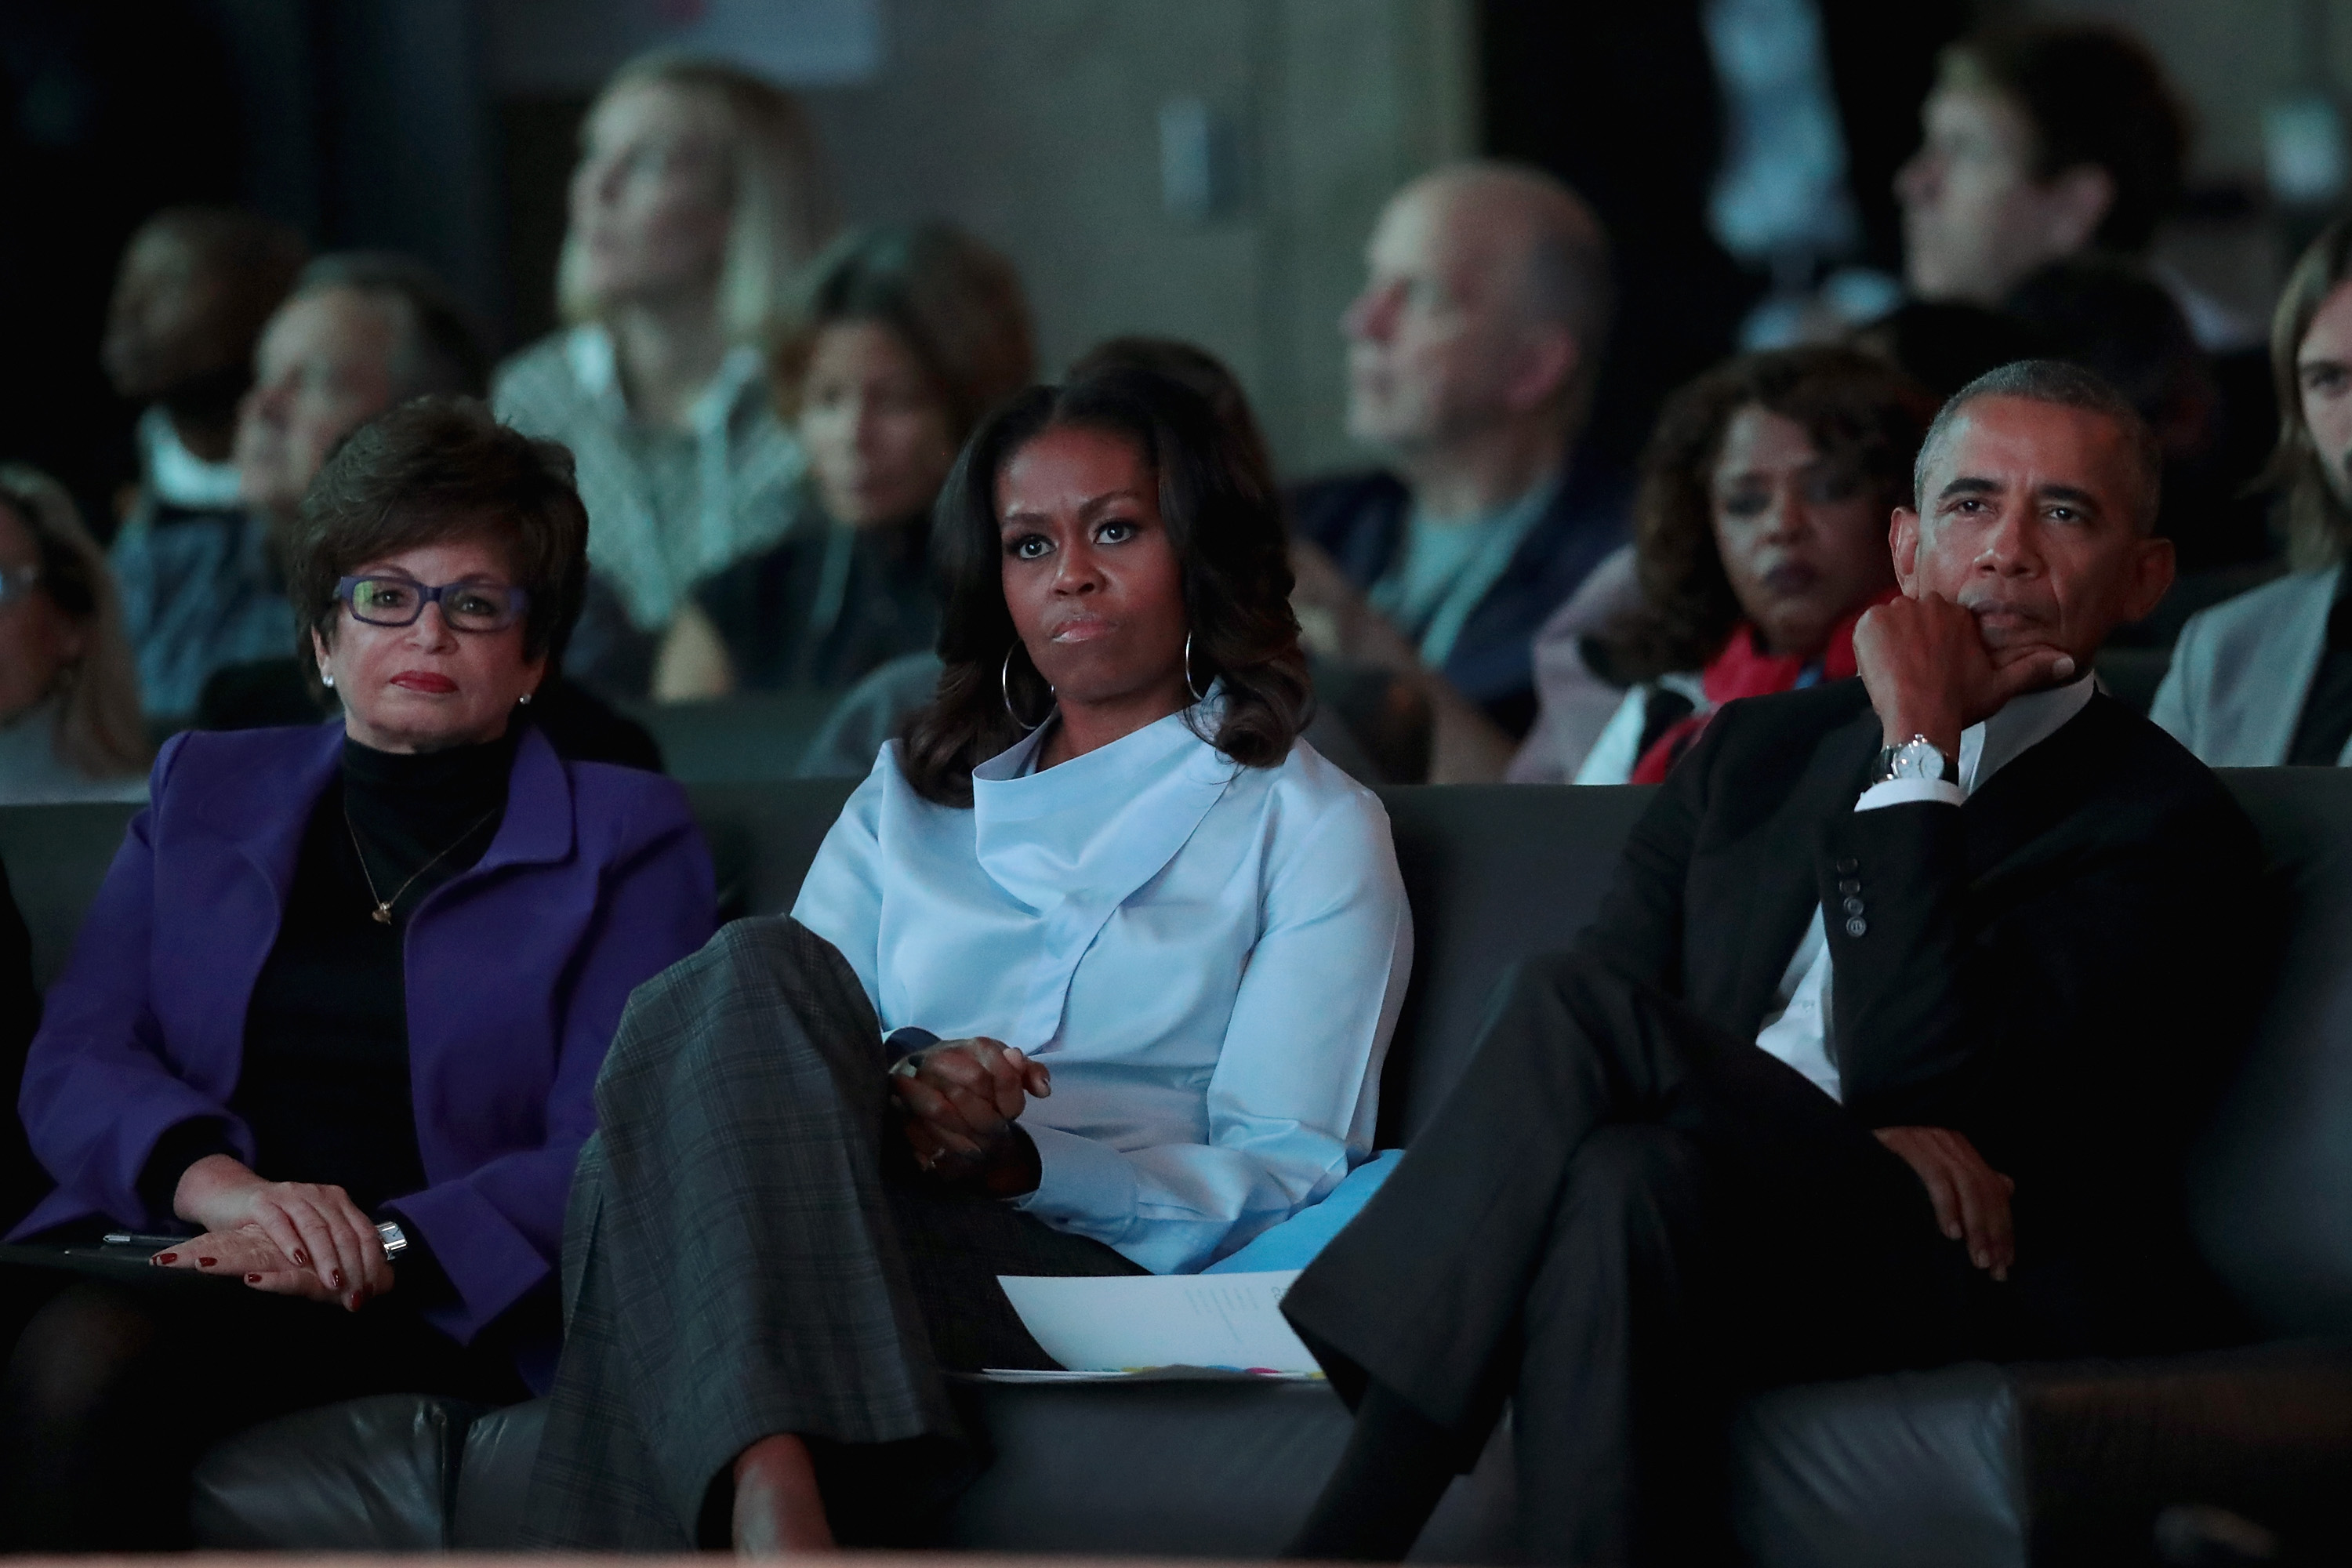 Former advisor to the president Valerie Jarrett (L) and former first Lady Michelle and president Barack Obama listen to speakers at the inaugural Obama Foundation Summit on October 31, 2017 in Chicago, Illinois. (Photo by Scott Olson/Getty Images)